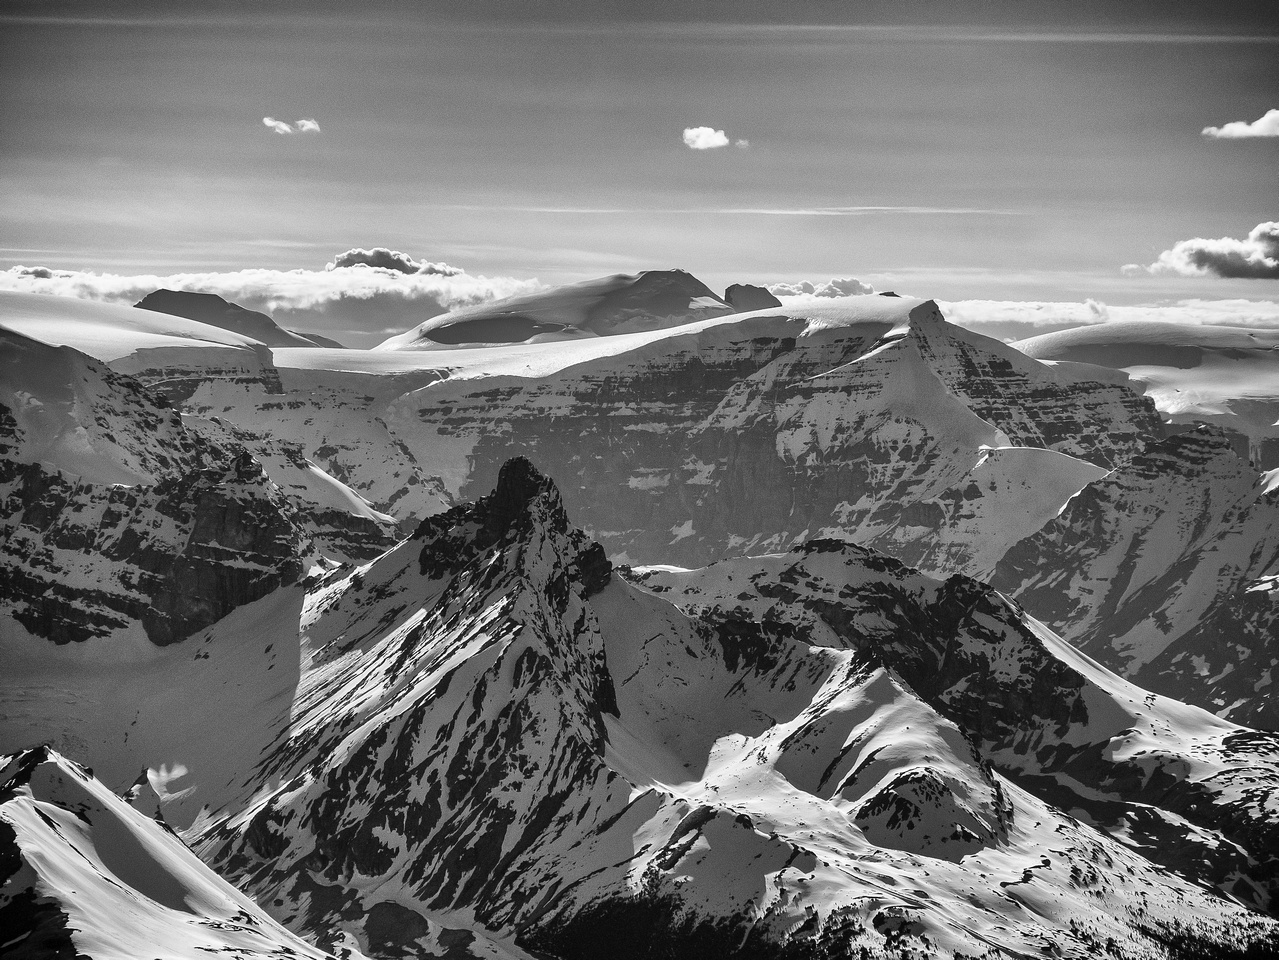 Some familiar Columbia Icefields peak including South Twin, North Twin, Twin's Tower and Kitchener. Hilda Peak in the foreground.